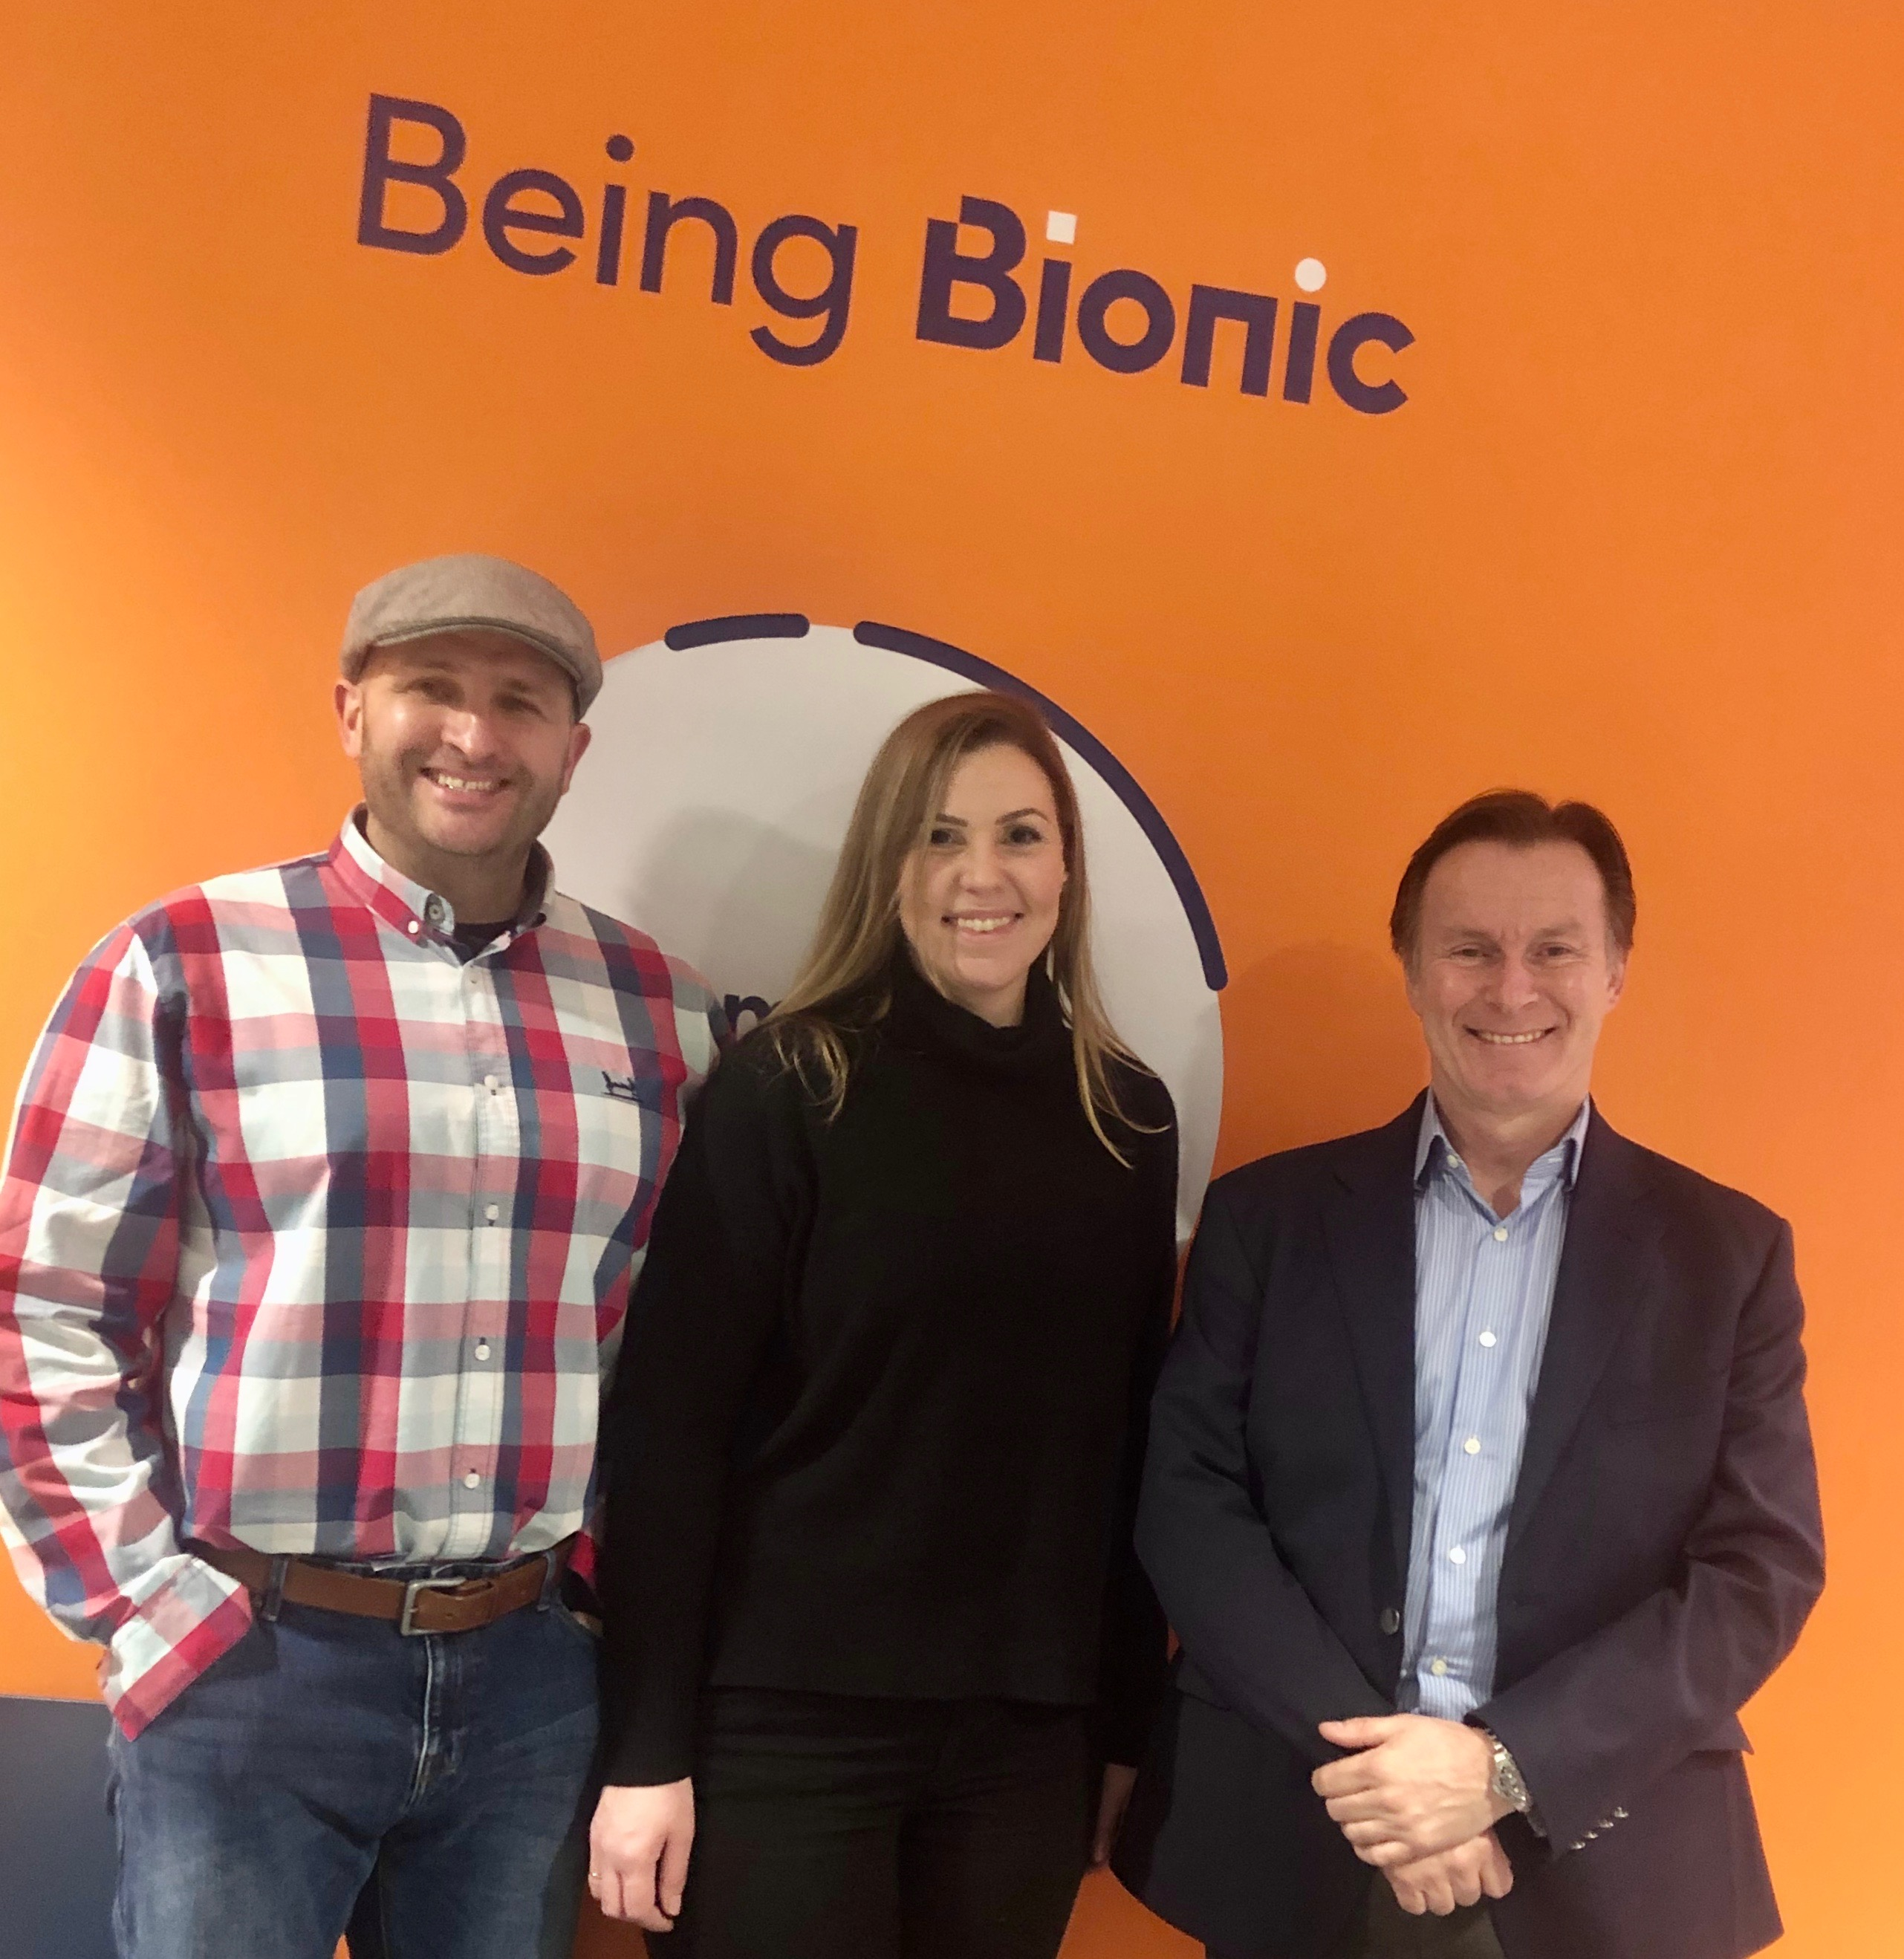 The Flat Cap team stood in front of an orange wall with Being Bionic written above them at Bionic HQ